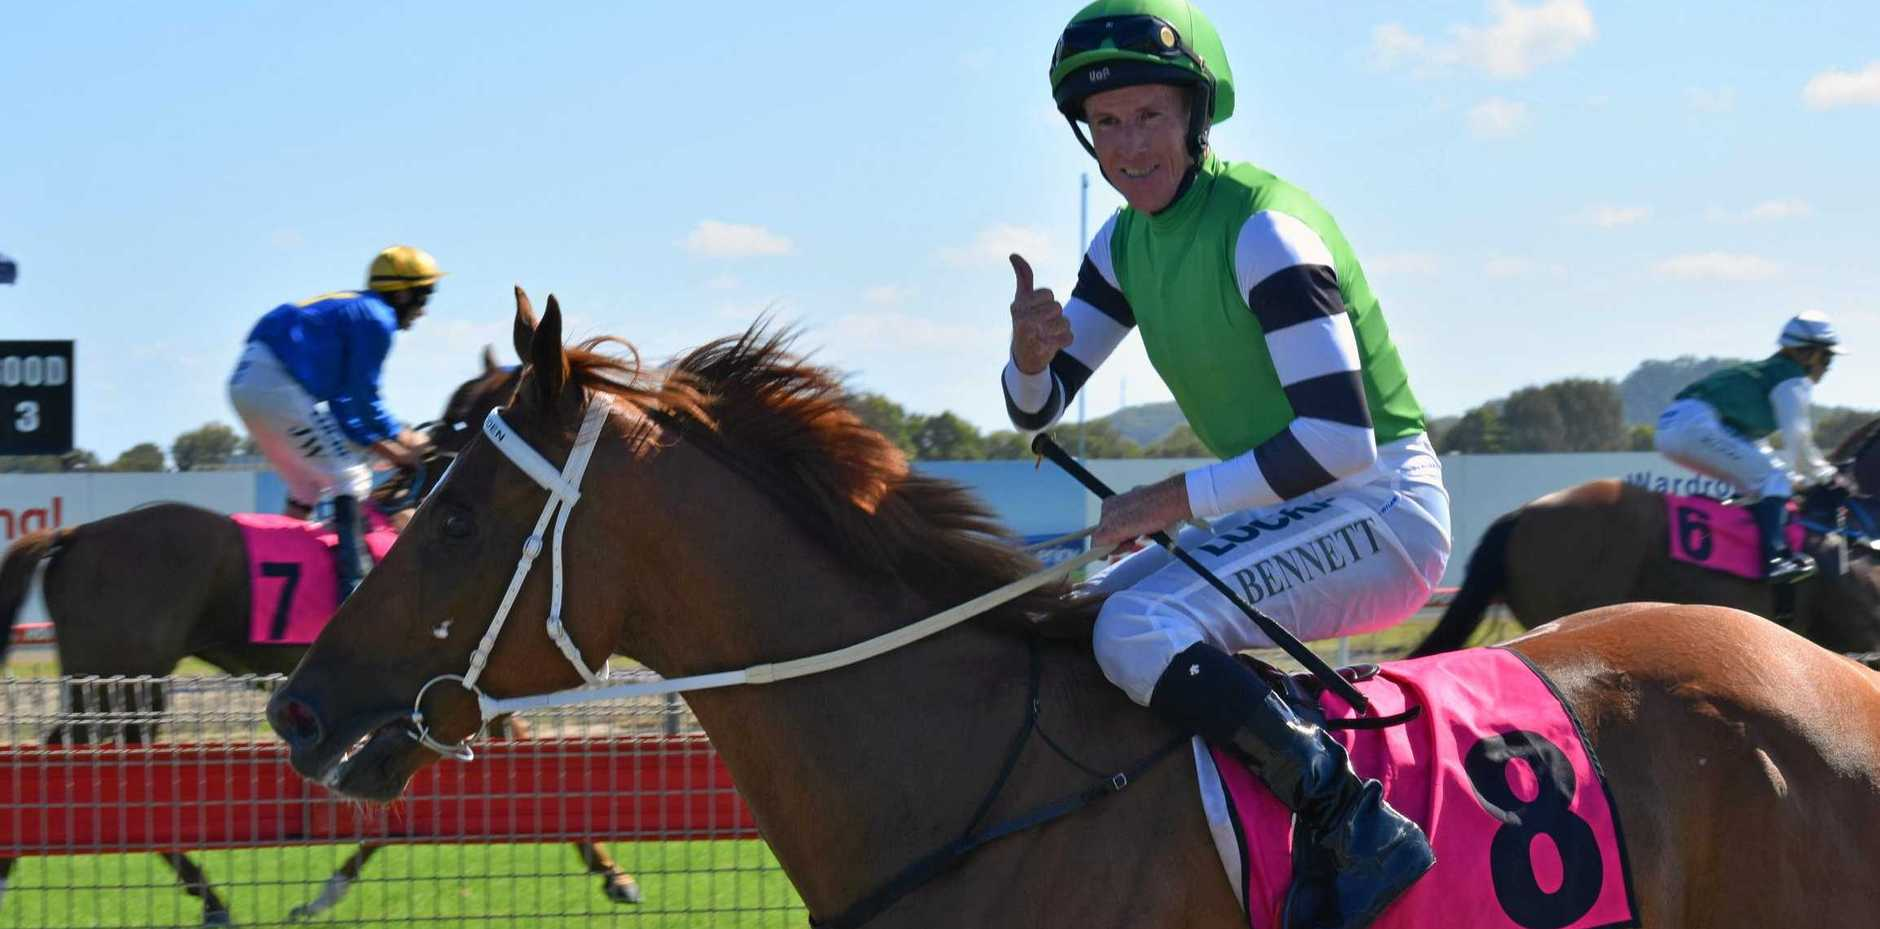 Jockey Matthew Bennett will ride the Ethan Ensby-trained Partnership in the $75,000 Lismore Cup tomorrow.